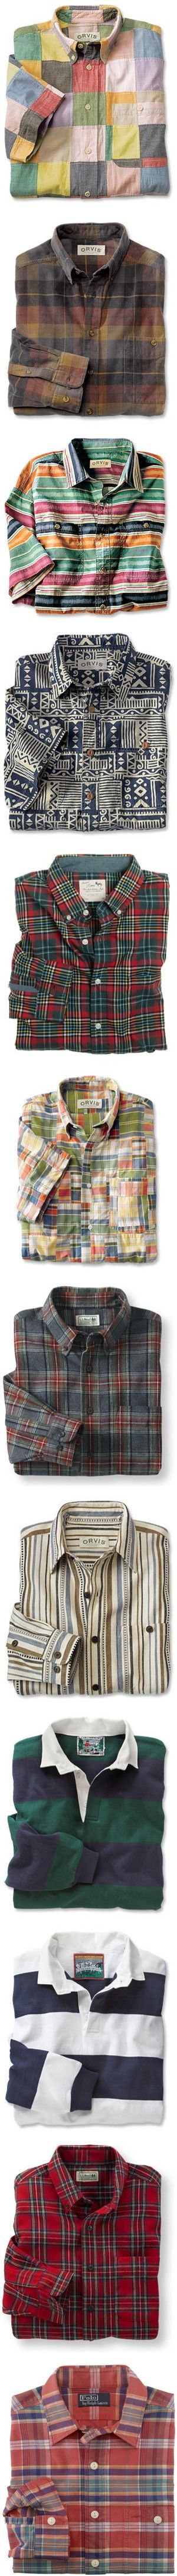 Shirts folded by mam-ka on Polyvore featuring striped, shirts, tartan, Checked, outer, tops, blouses, indian blouse, cotton blouse and madras shirt